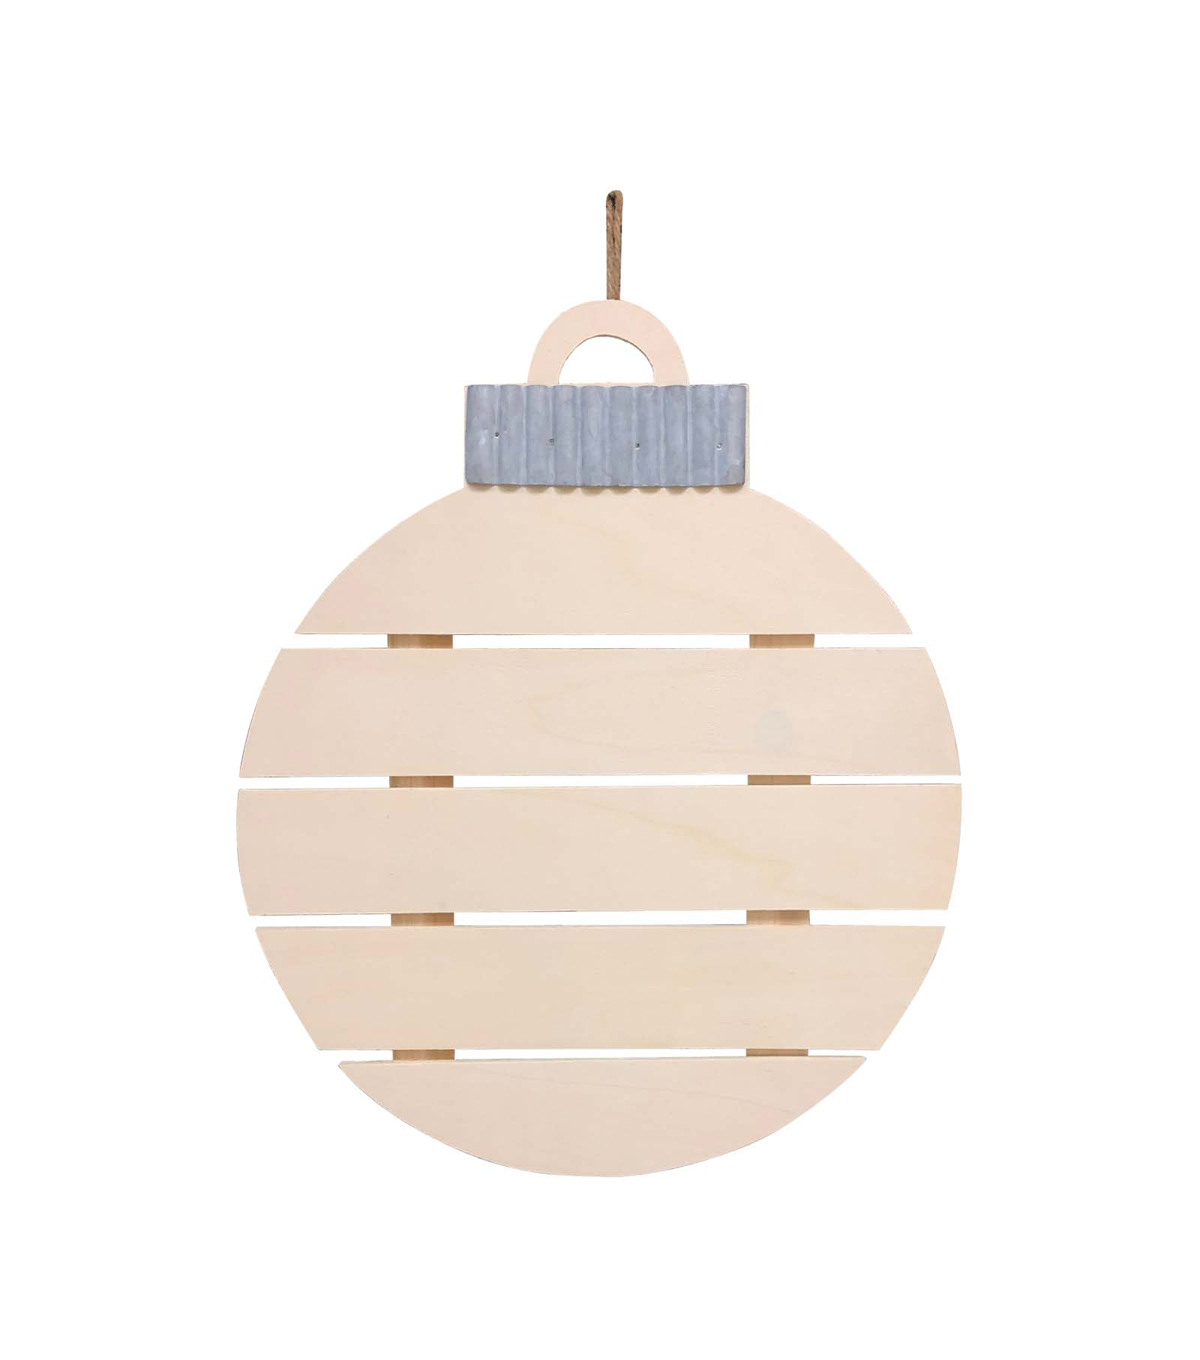 Handmade Holiday Craft 13.5\u0027\u0027x16.5\u0027\u0027 Wood Pallet Ornament Hanging Decor